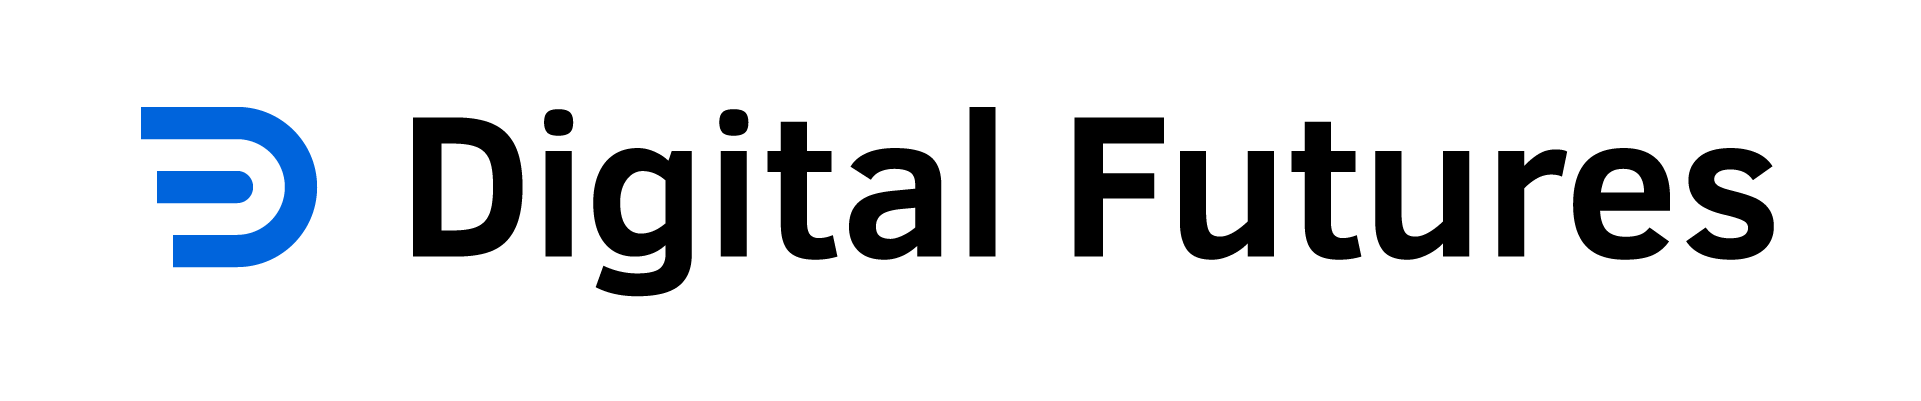 Digital Futures Group Limited